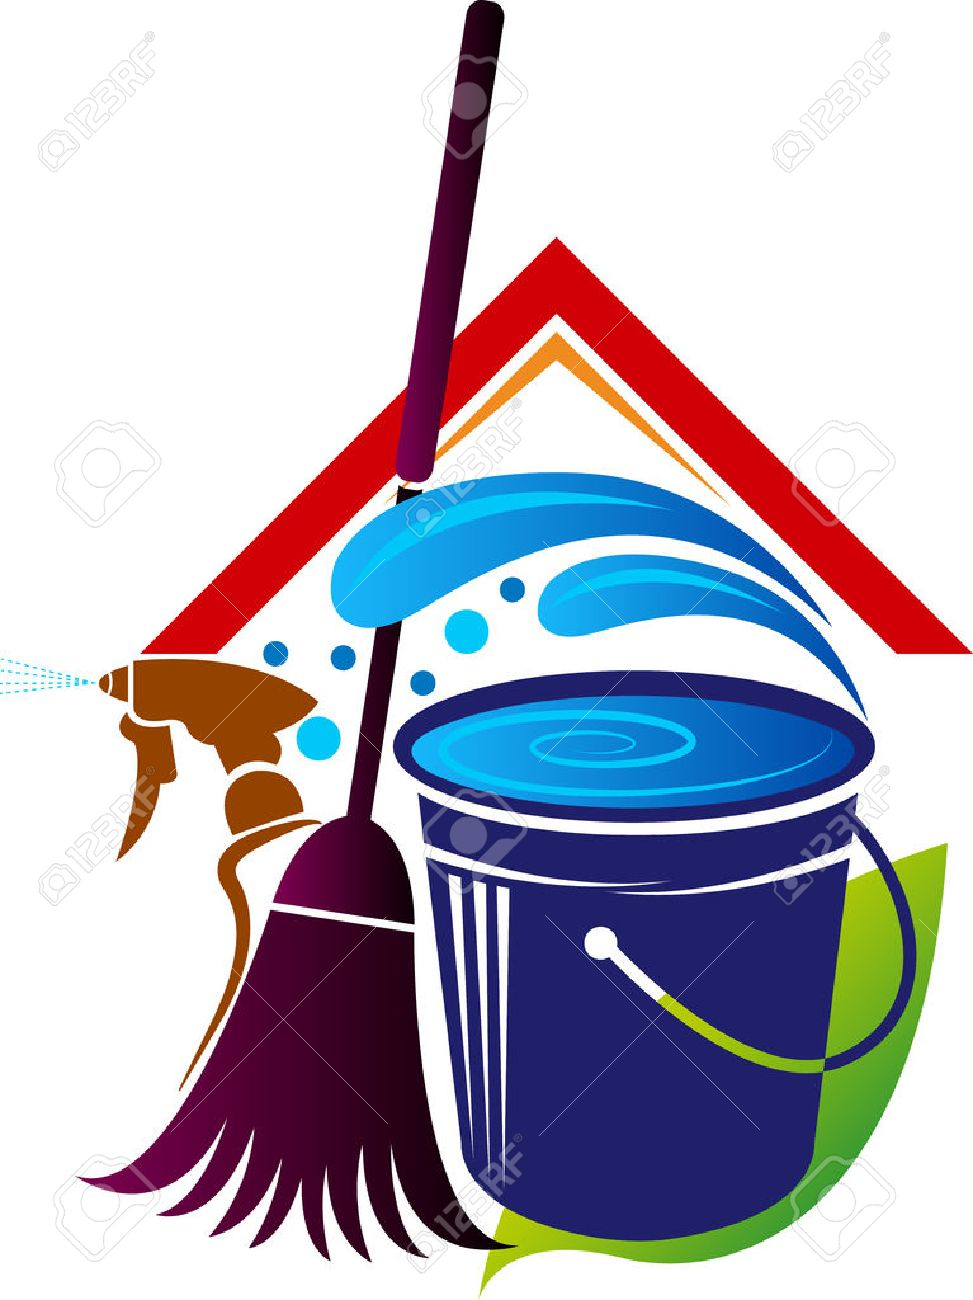 1,847 Purifier Stock Vector Illustration And Royalty Free Purifier.